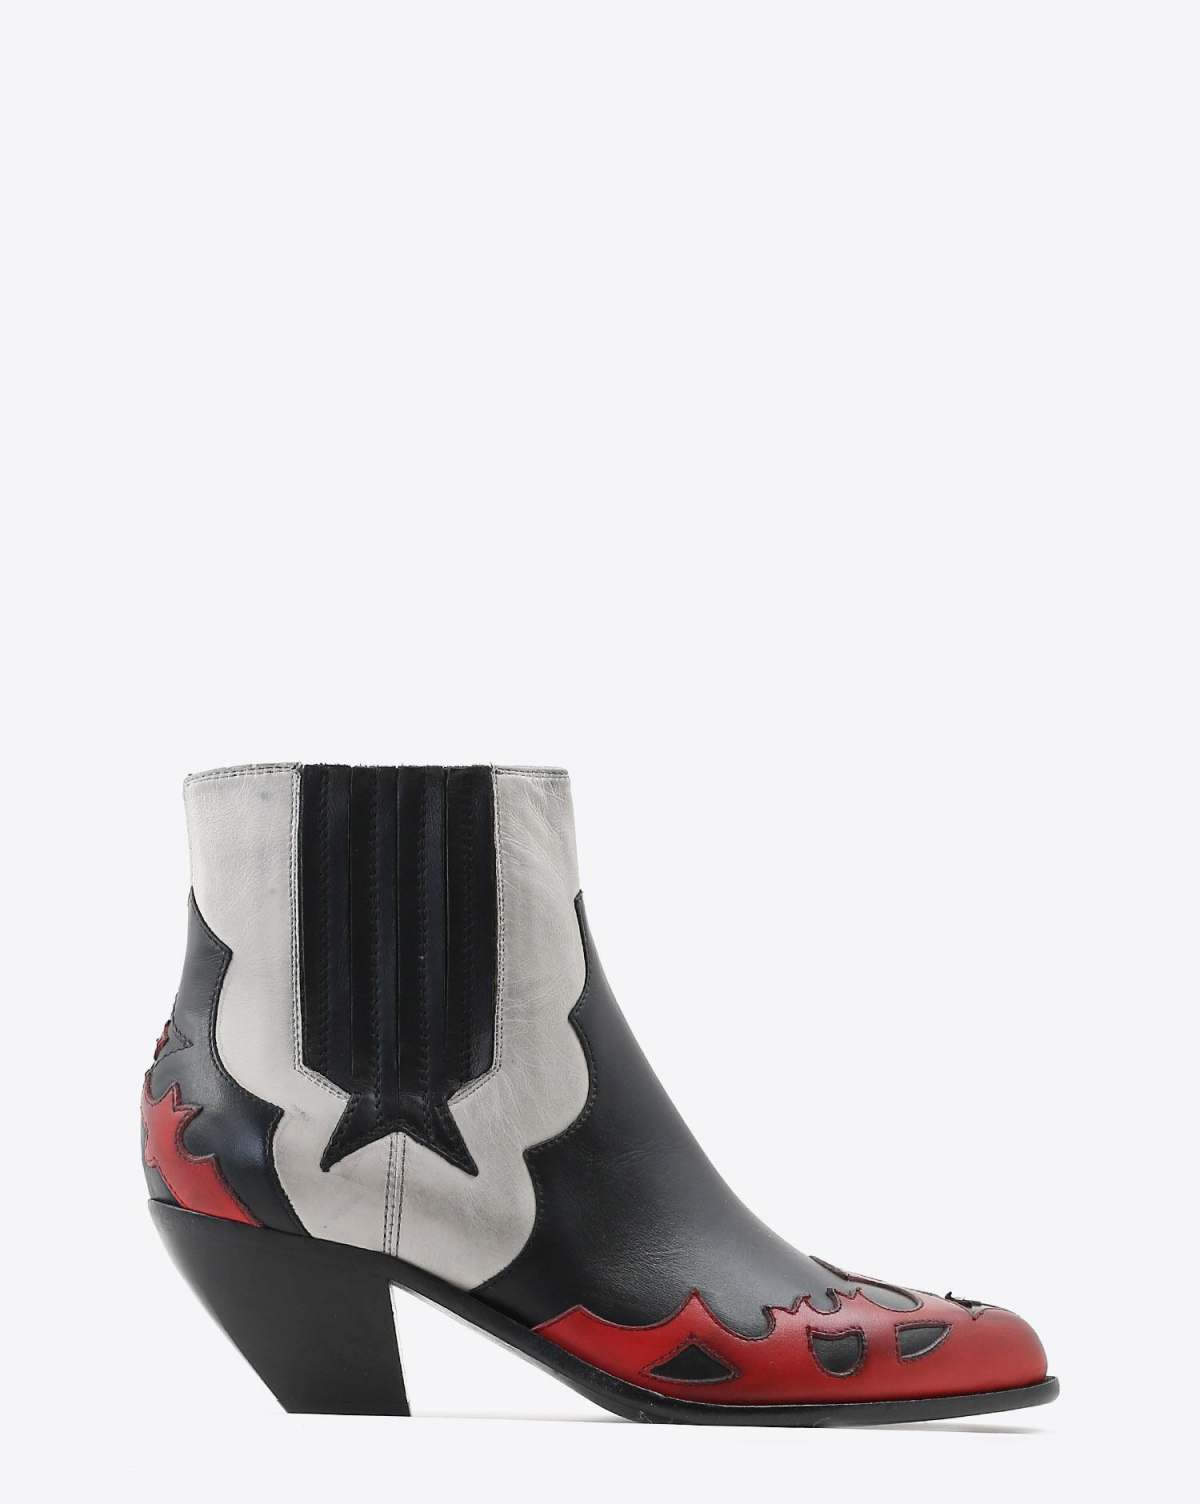 Golden Goose Woman Chaussures Pré-Collection Boots Sunset Flowers - White - Red - Black